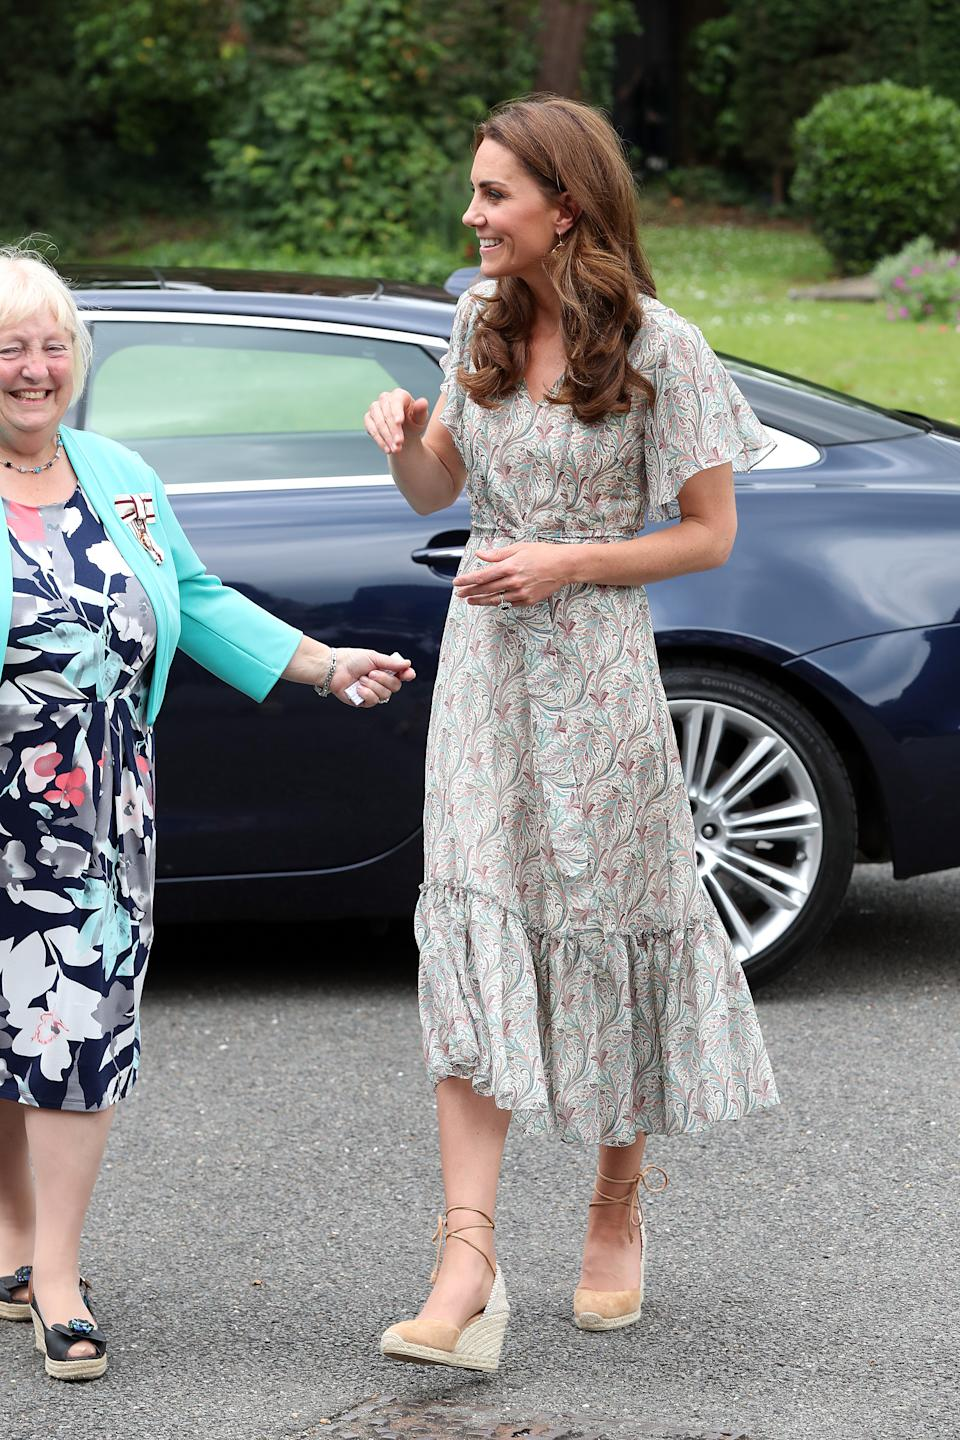 """The Duchess of Cambridge wore a paisley print tea dress by <a href=""""https://ridleylondon.com/collections/dresses-1/products/virginia-midi-3"""" rel=""""nofollow noopener"""" target=""""_blank"""" data-ylk=""""slk:Ridley London"""" class=""""link rapid-noclick-resp"""">Ridley London </a>with her Castaner 'Cabrina' espadrille wedges and her <a href=""""https://fave.co/2NfCY8B"""" rel=""""nofollow noopener"""" target=""""_blank"""" data-ylk=""""slk:Catherine Zoraida earrings"""" class=""""link rapid-noclick-resp"""">Catherine Zoraida earrings</a>. [Photo: Getty]"""